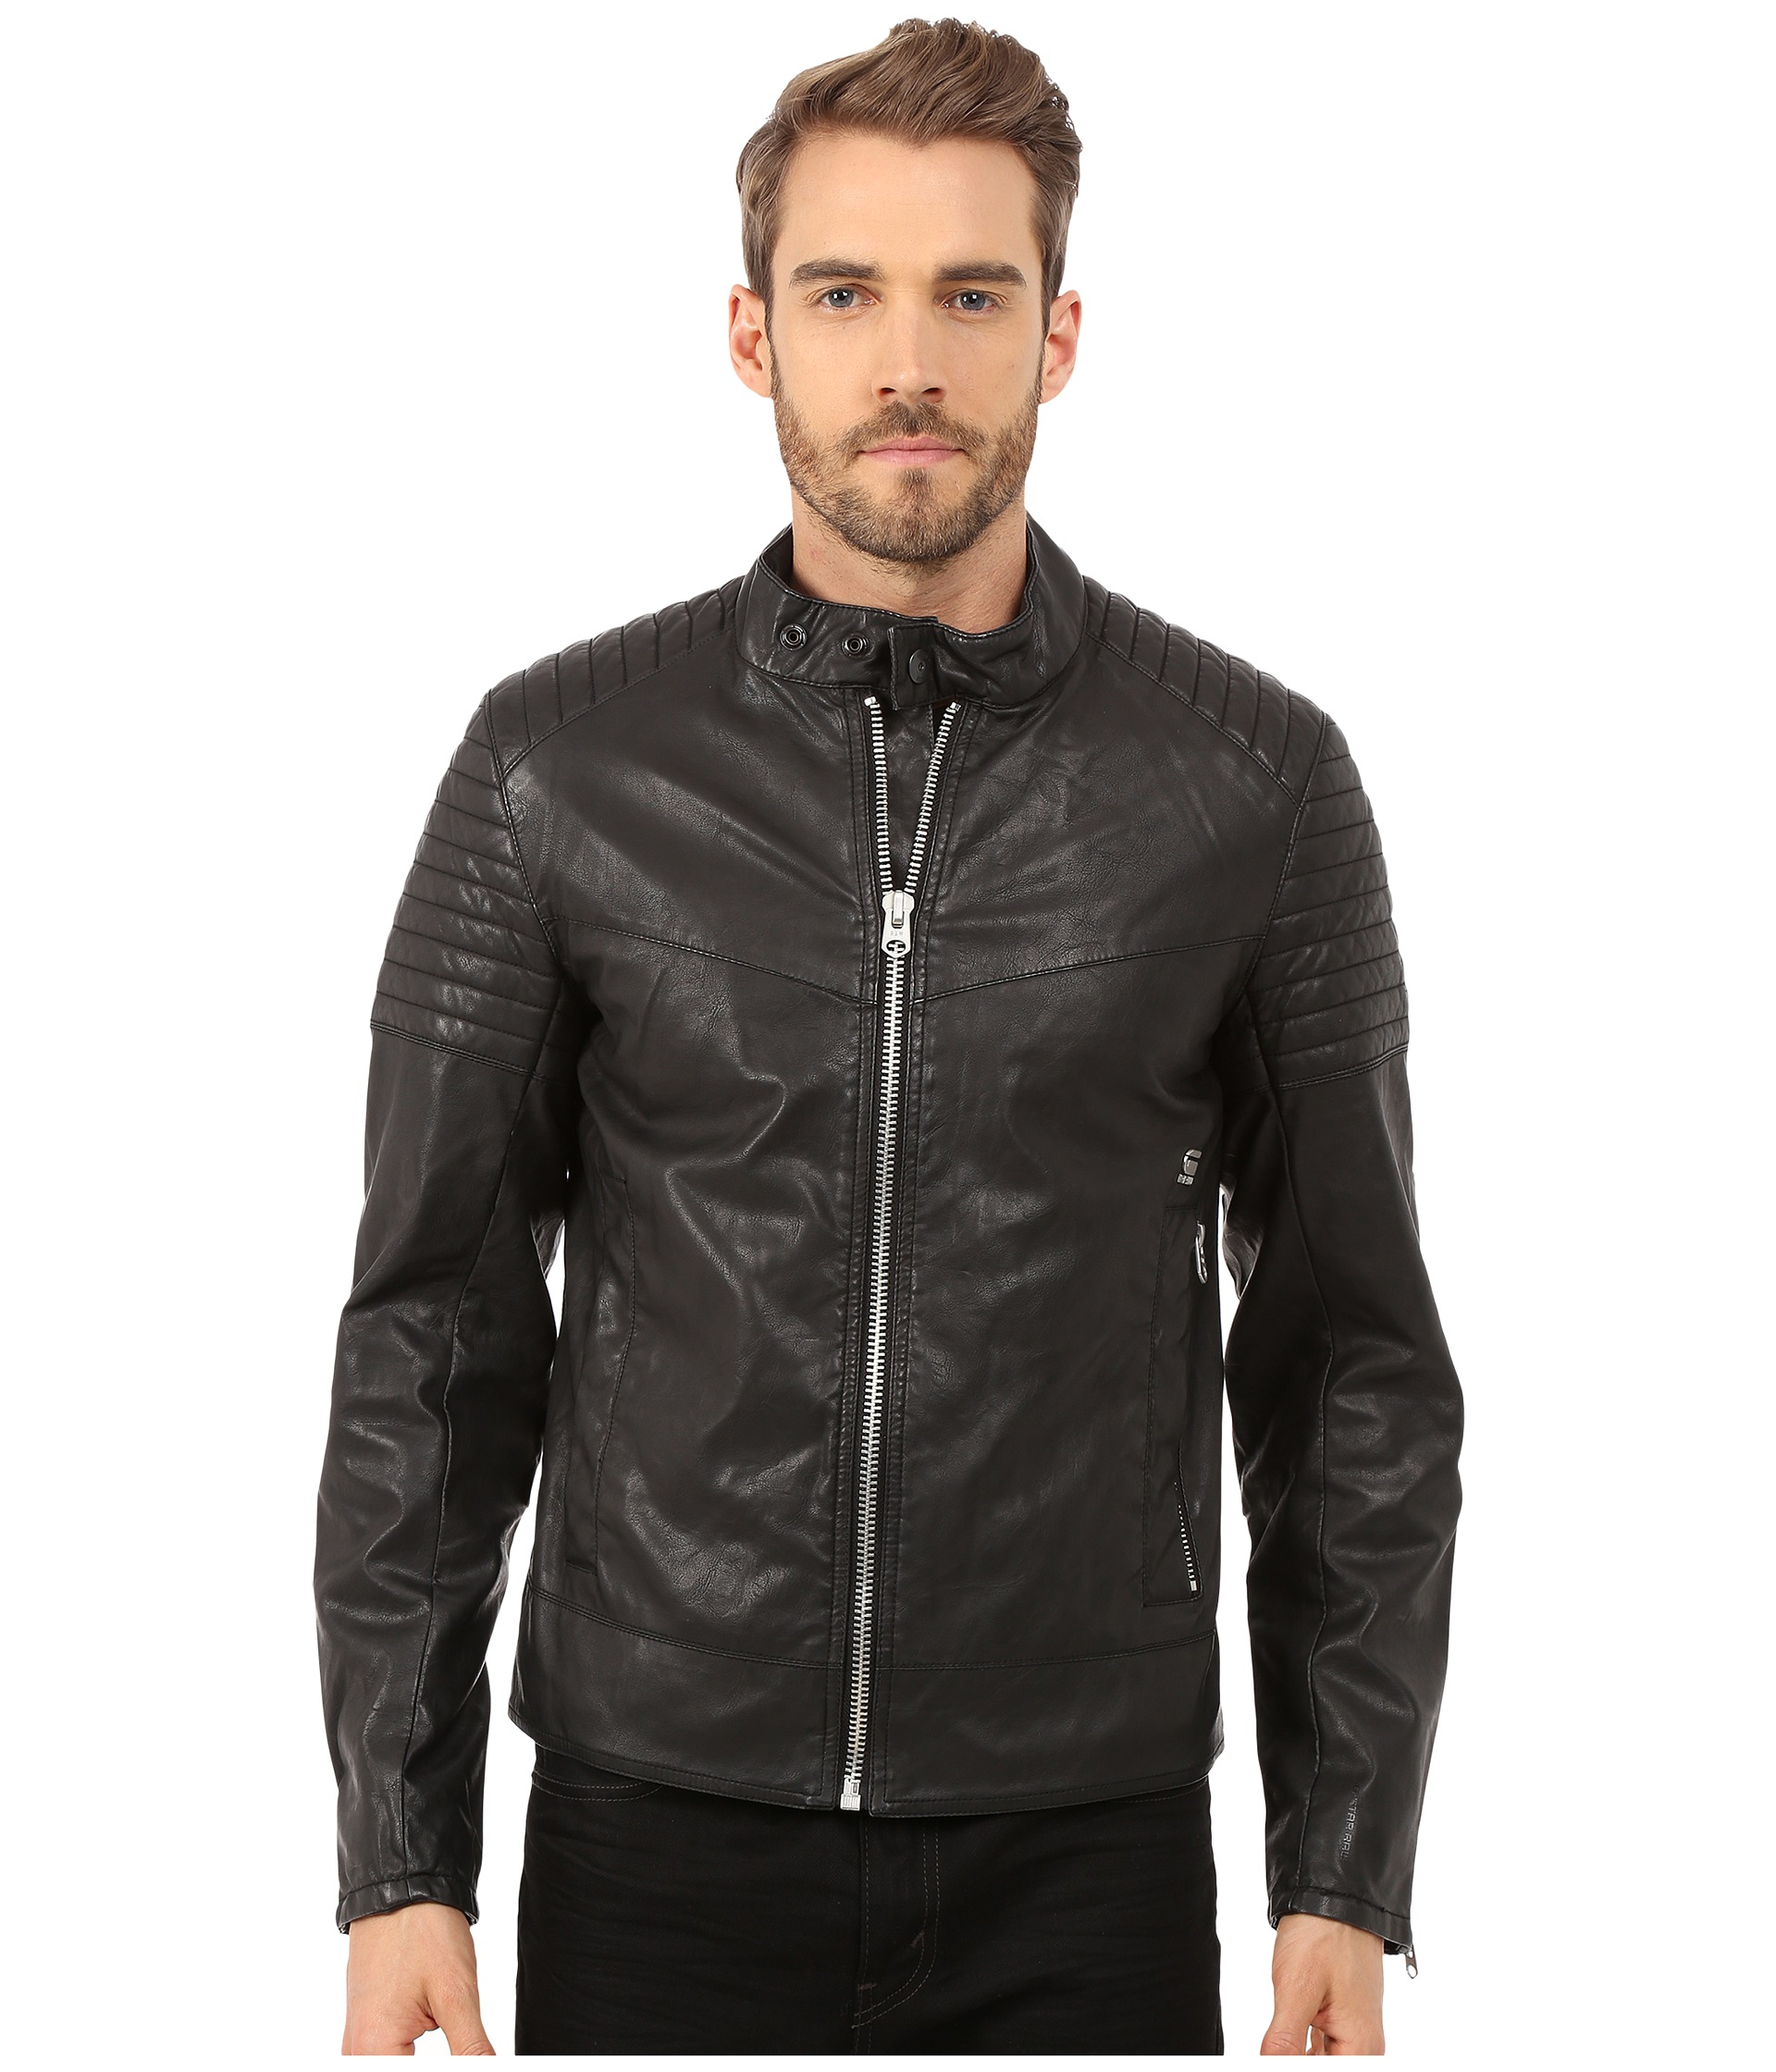 2c83422034752 G-star Raw Attacc Jacket In Black For Men